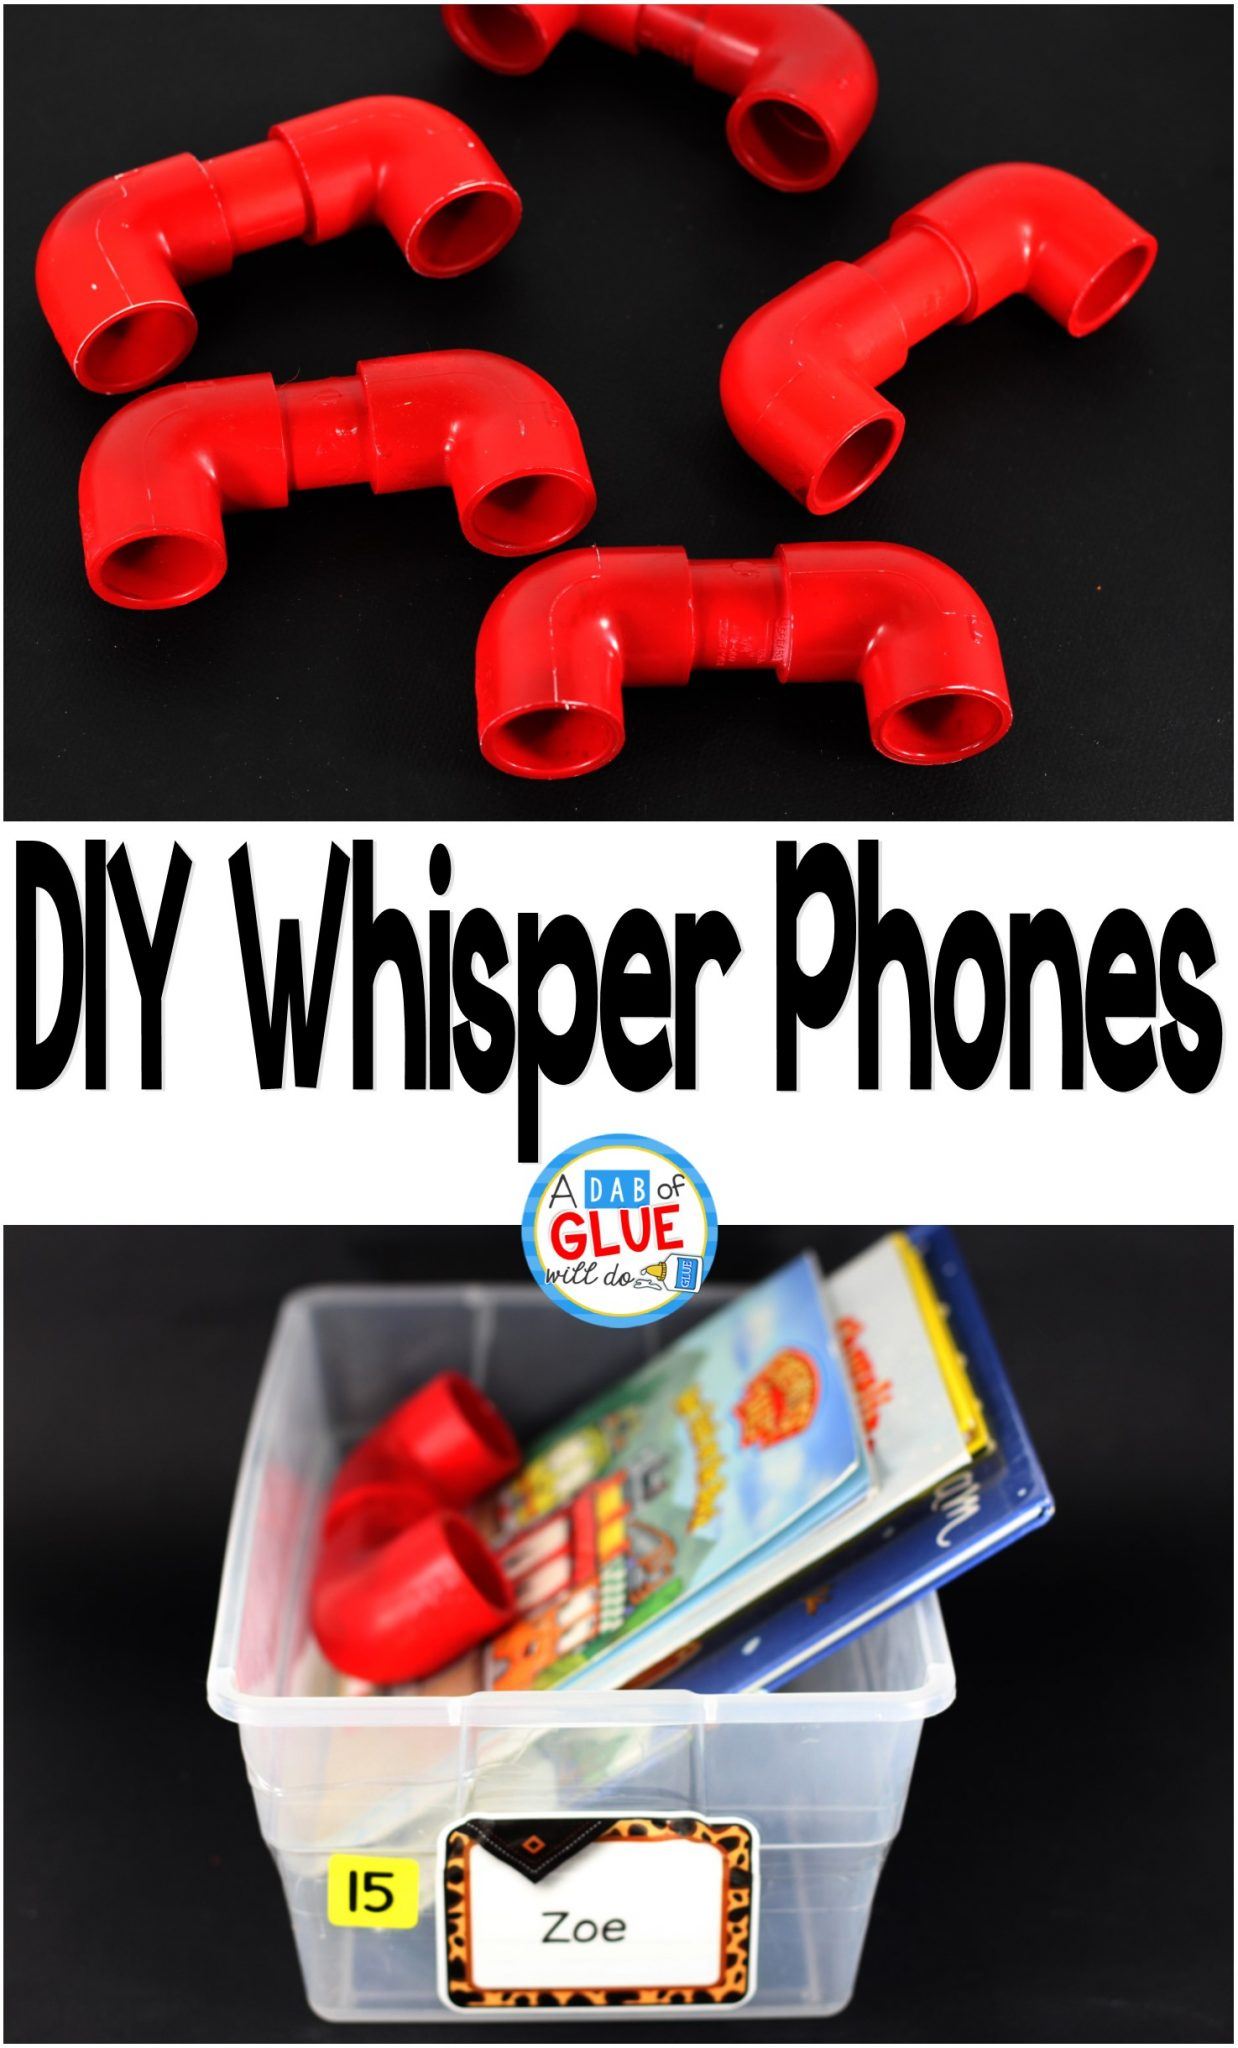 DIY Whisper Phones